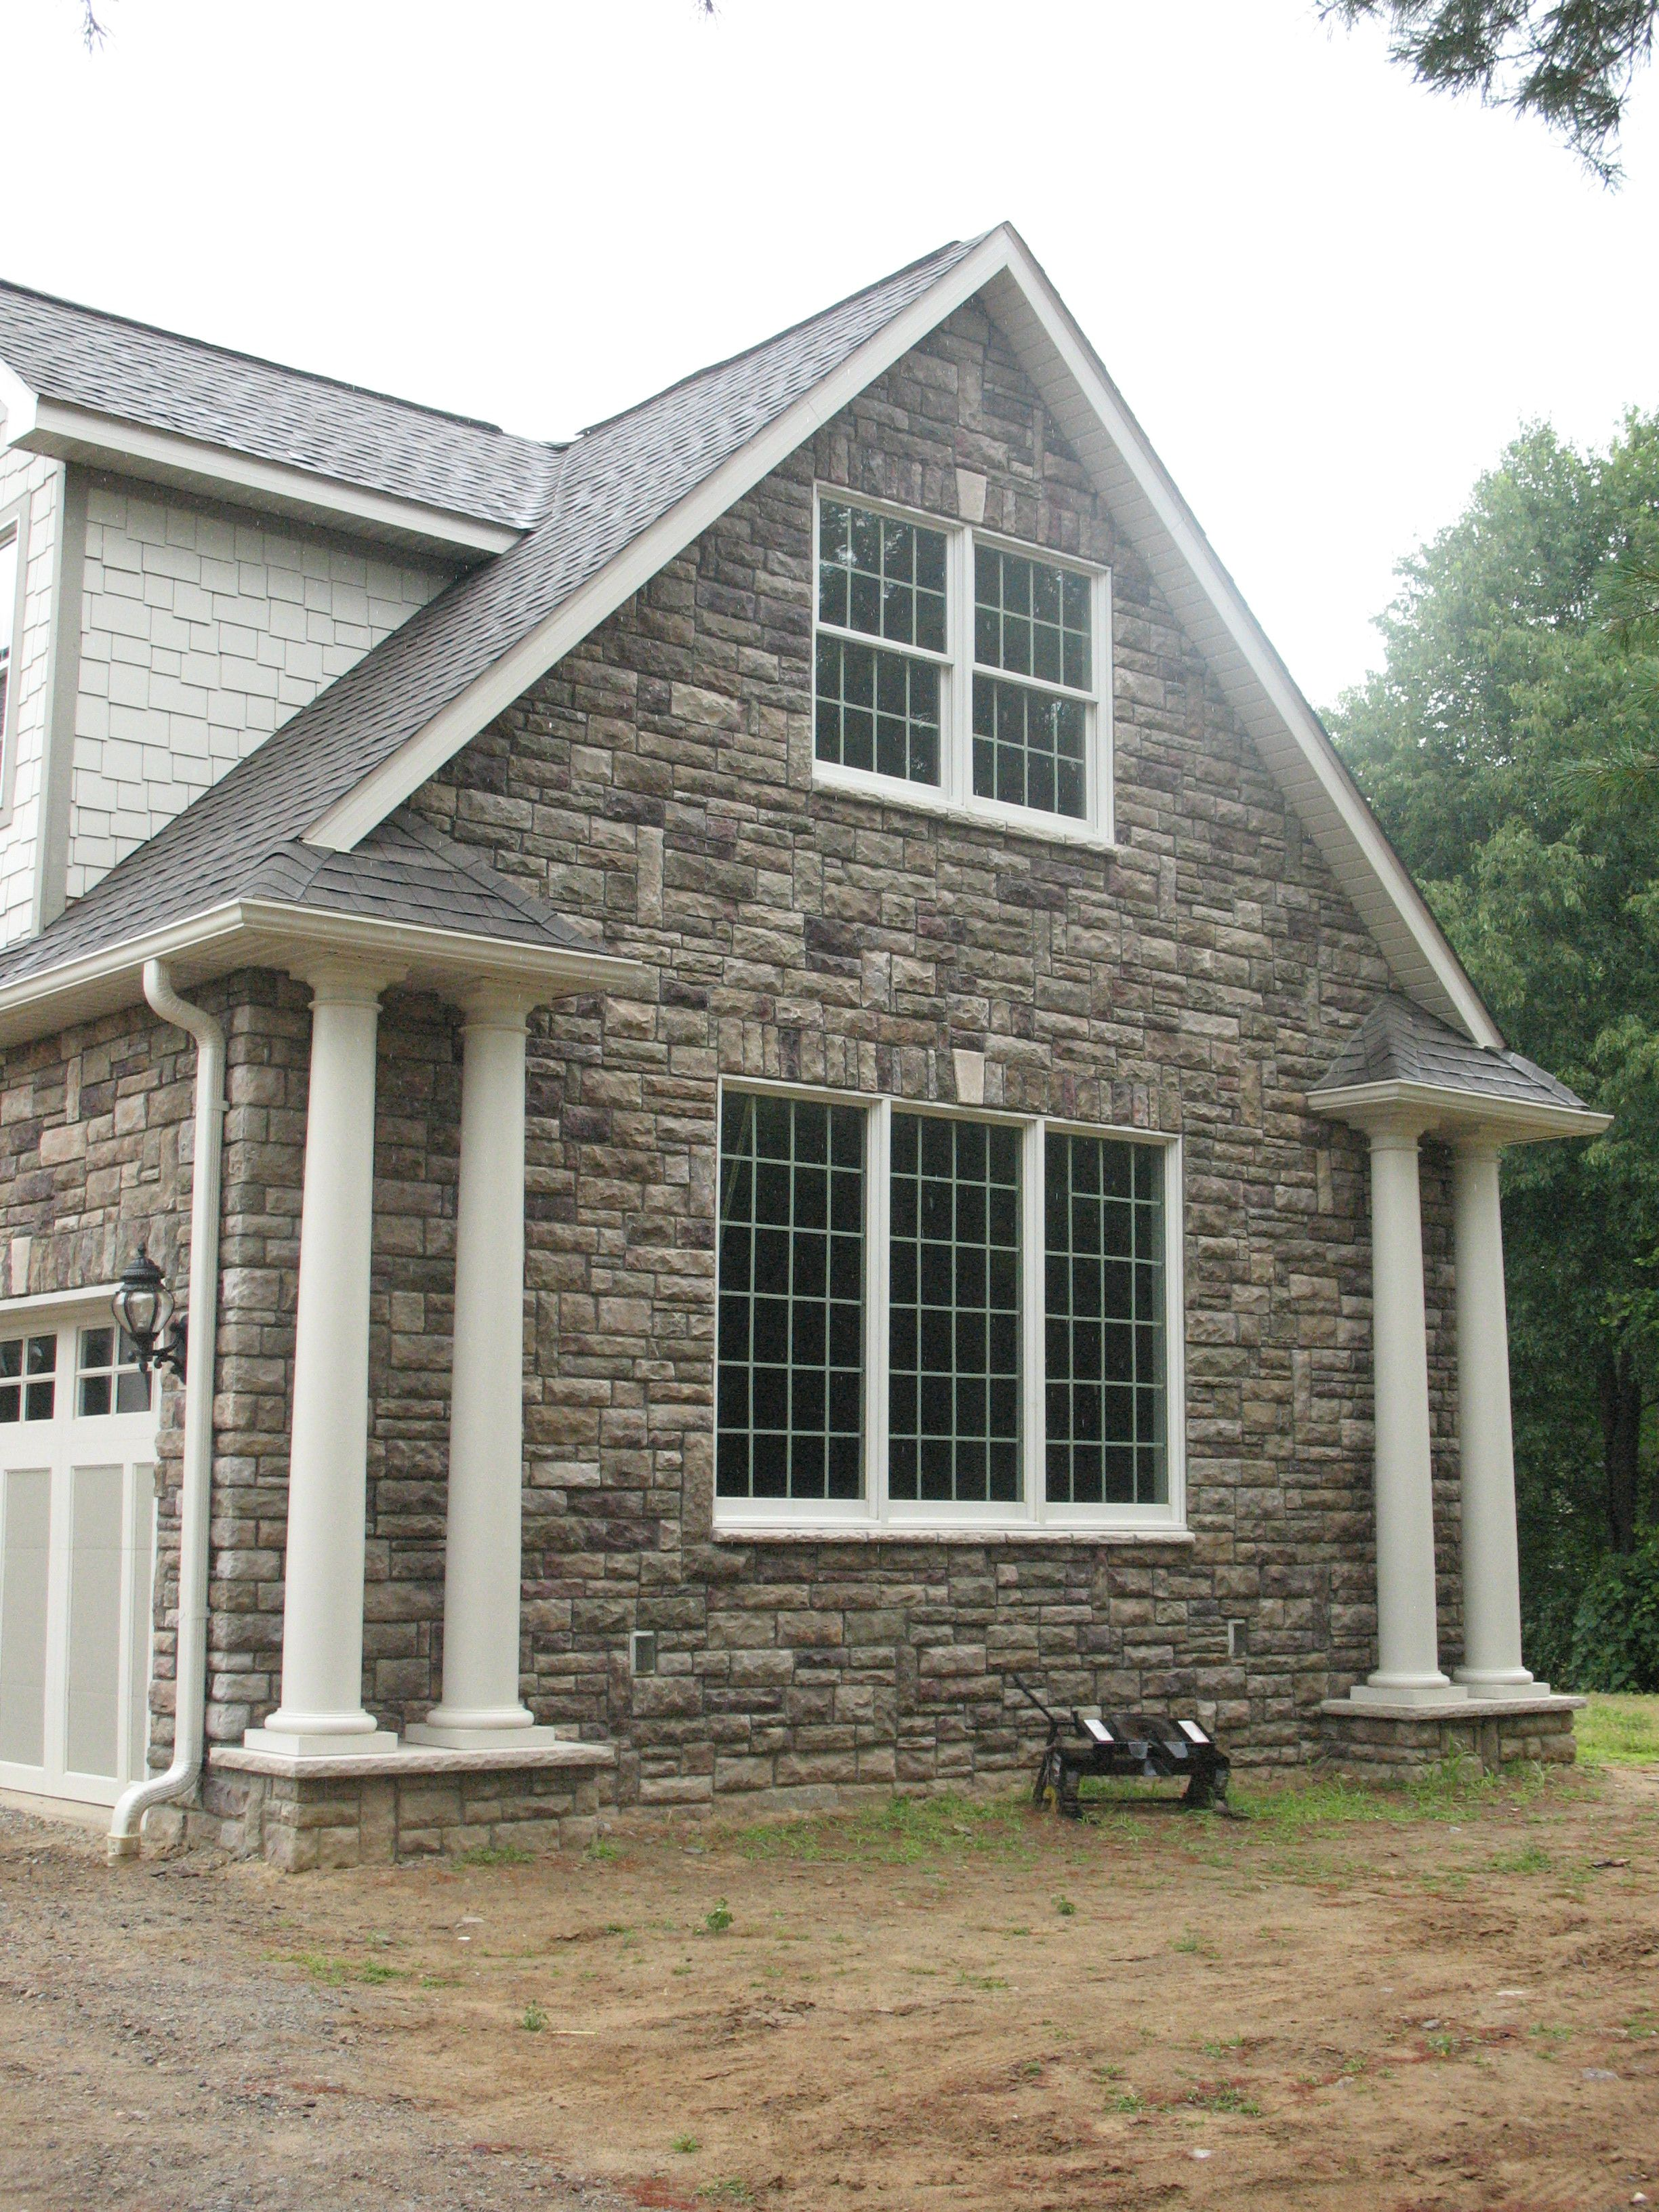 Bucks County Limestone From Boral Cultured Stone Installed By The Pros At Brighton Stone Fireplac Stone Exterior Houses House Paint Exterior Exterior Stone